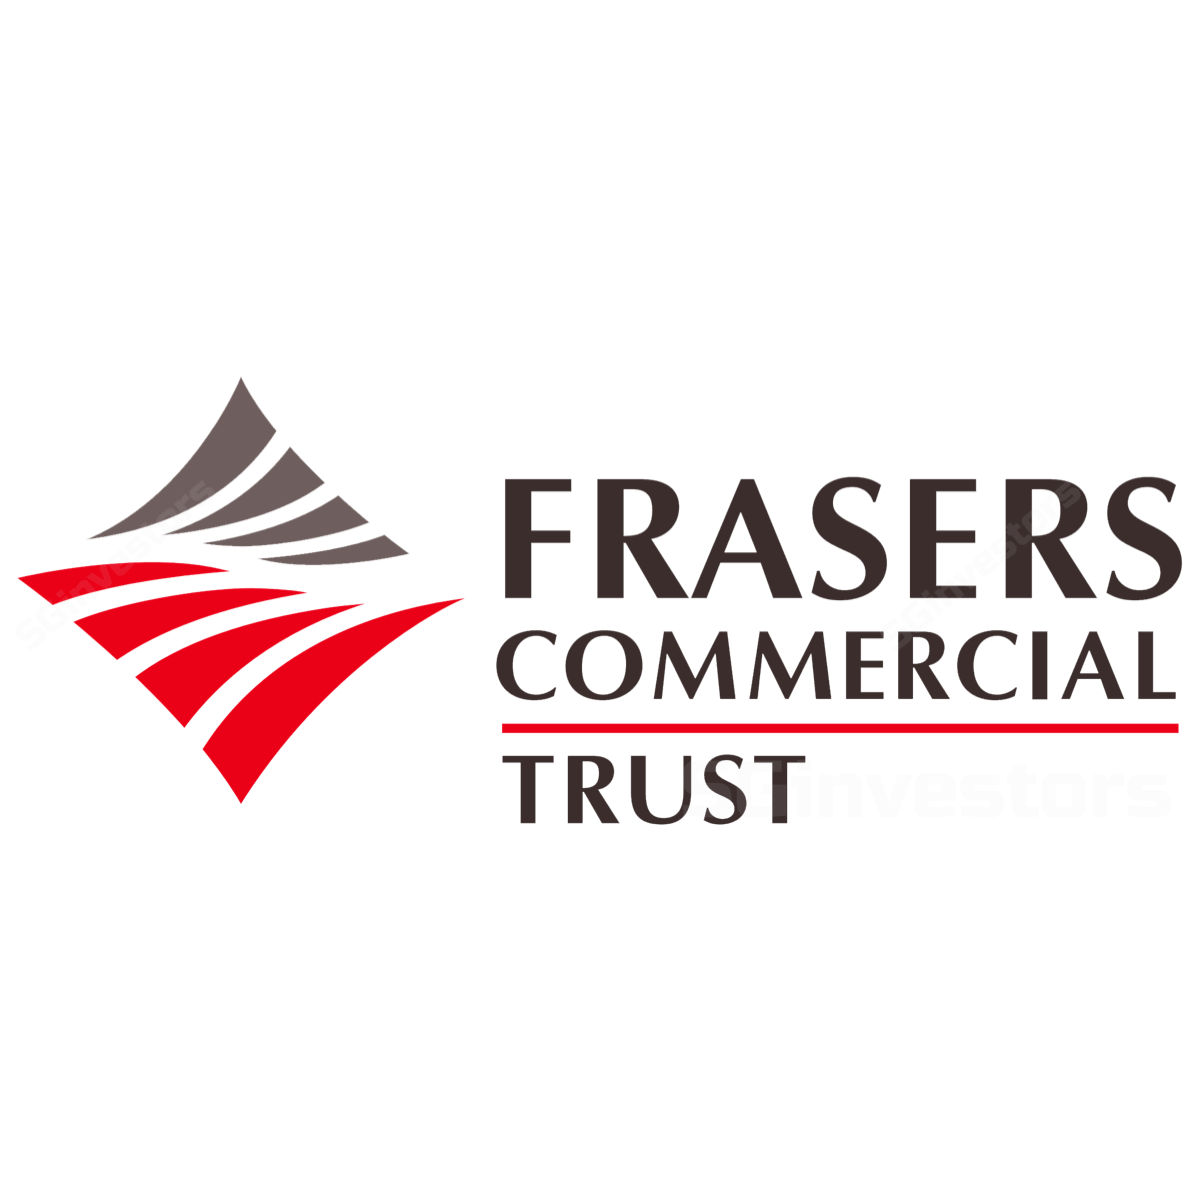 Frasers Commercial Trust - OCBC Investment 2017-09-25: HPE Vacates Sizeable Space At ATP